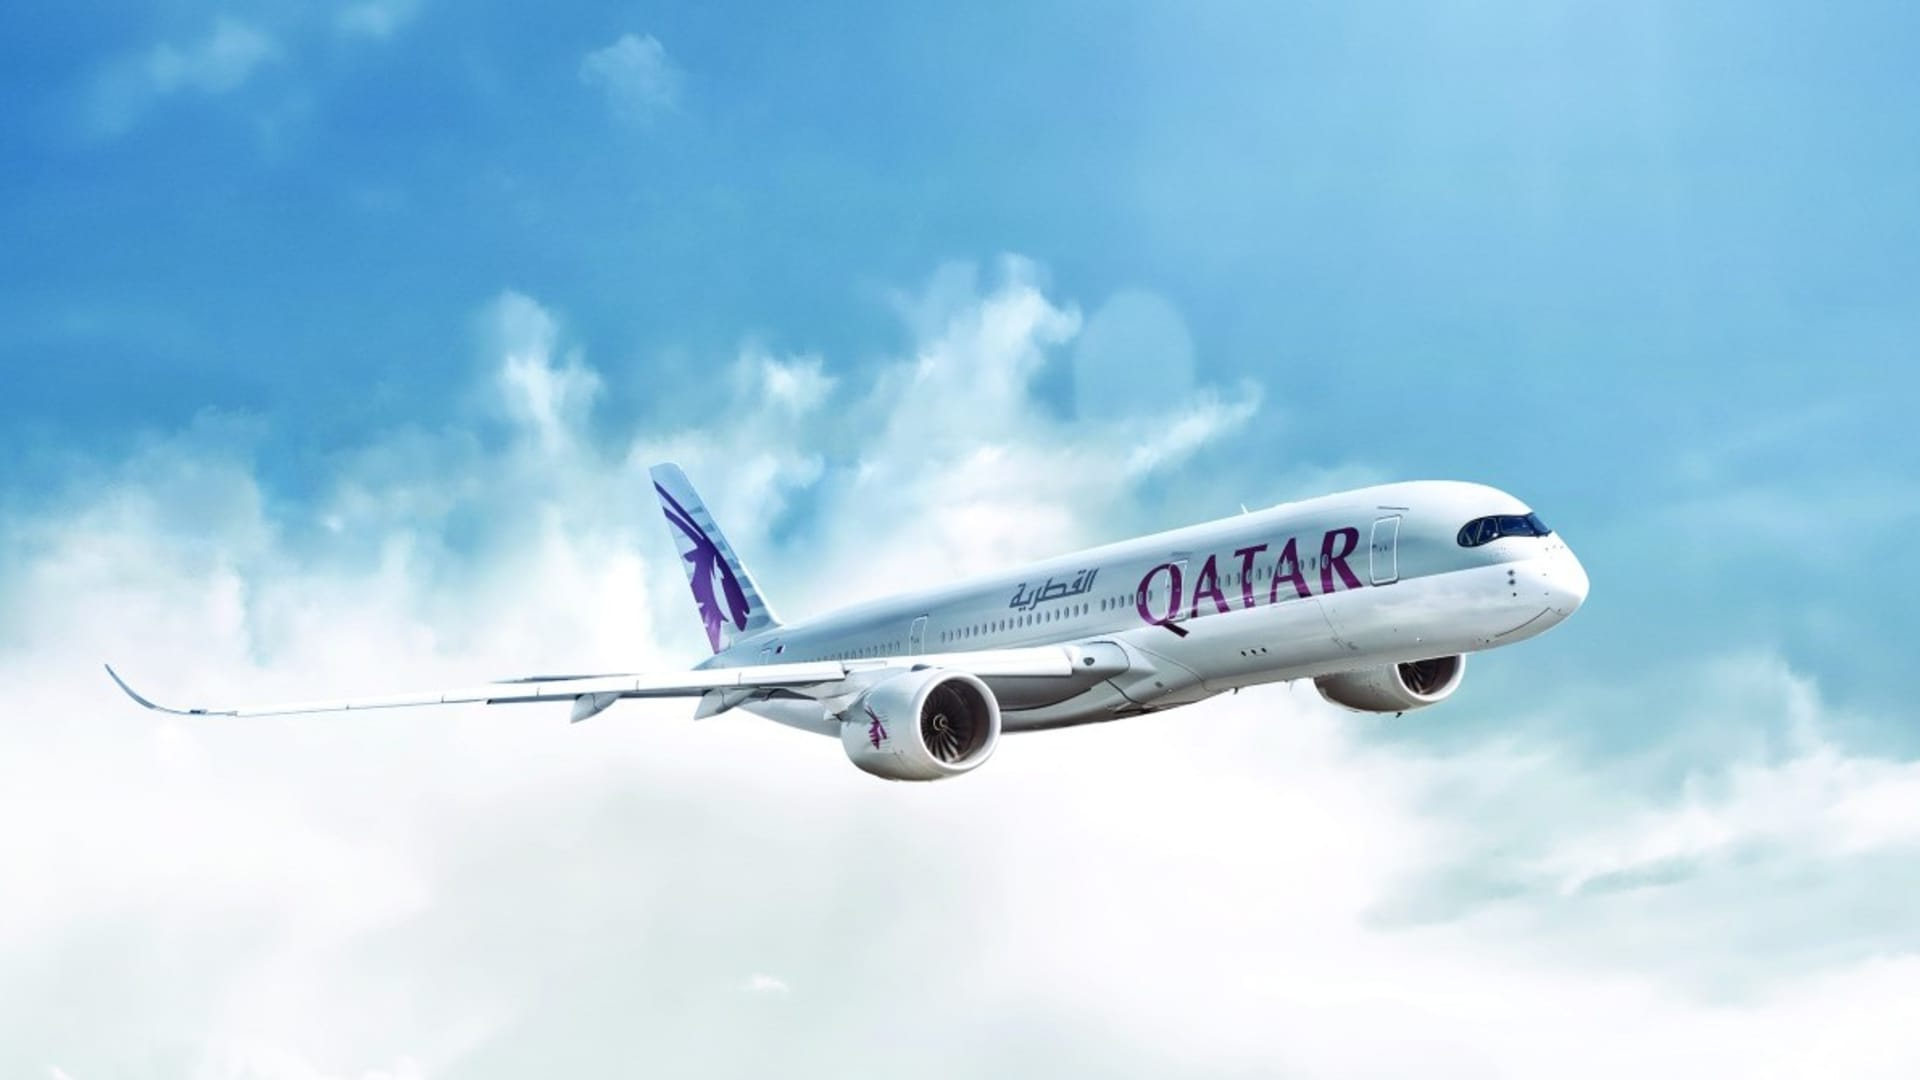 Doha-based Qatar Airways was launched in the mid-1990s and currently flies to more than 140 destinations.